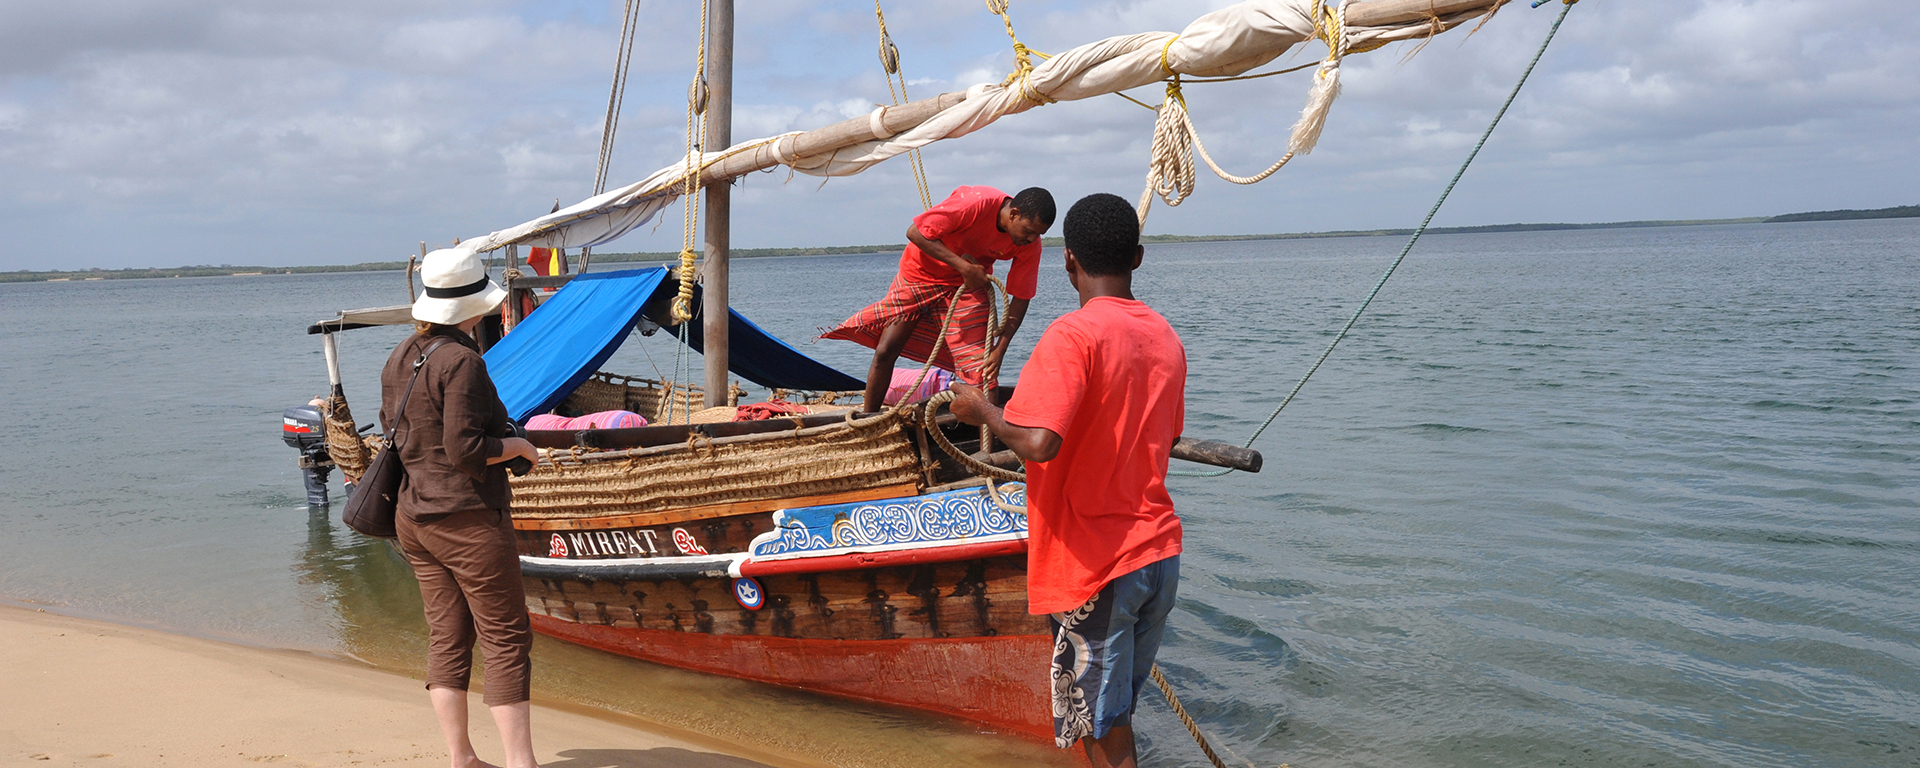 Traditional sailing dhows are a common sight along the Kenya coast.